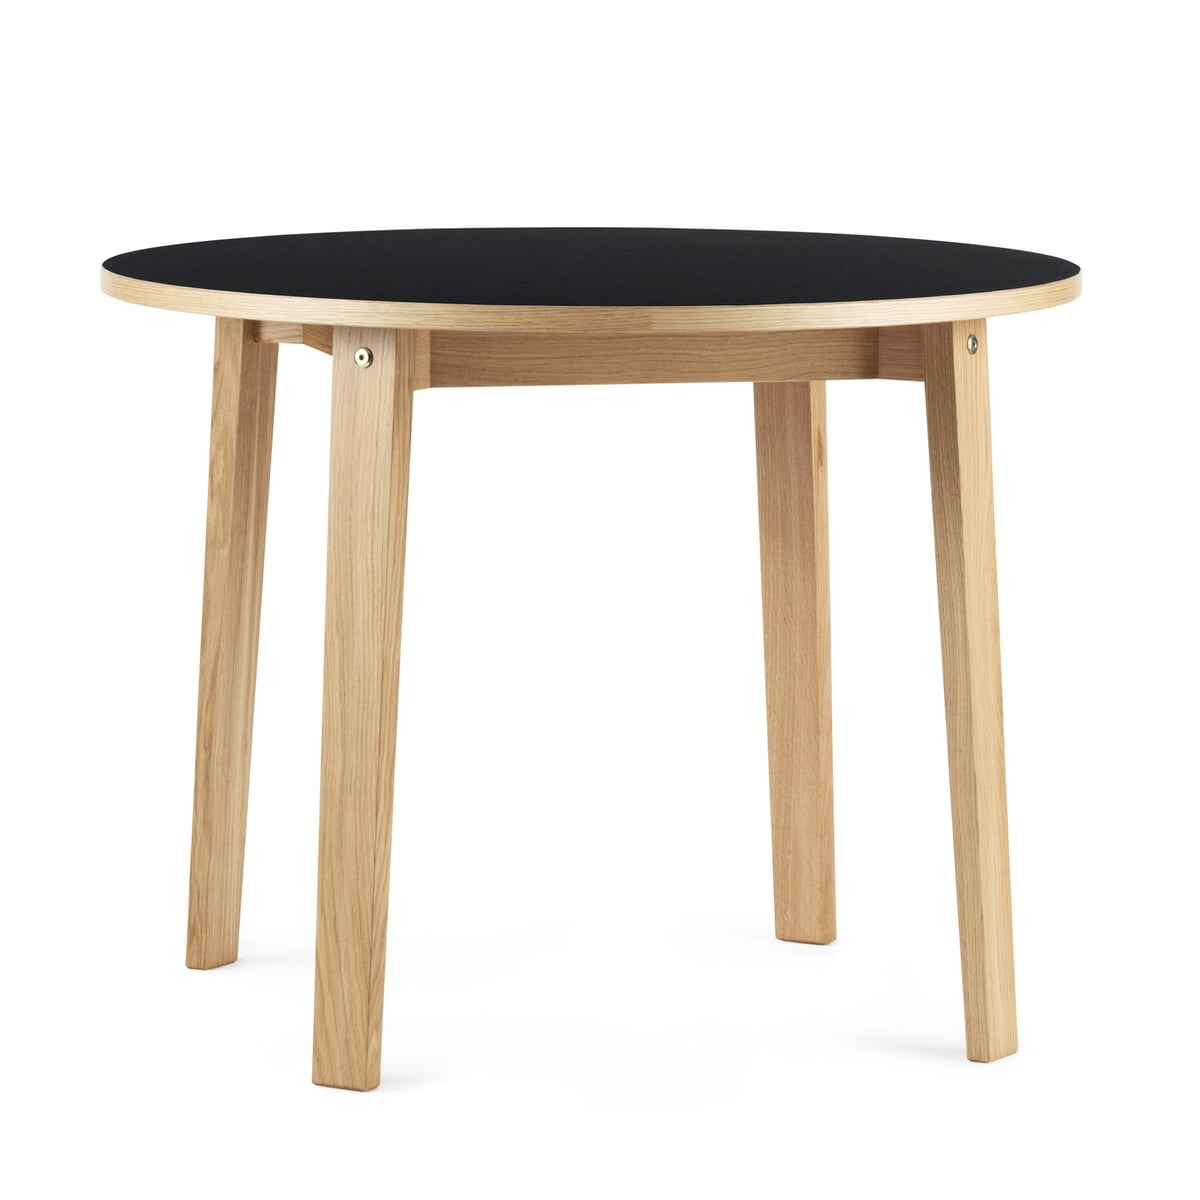 Gut The Slice Table Ø 95 X 74 Cm By Normann Copenhagen In Black